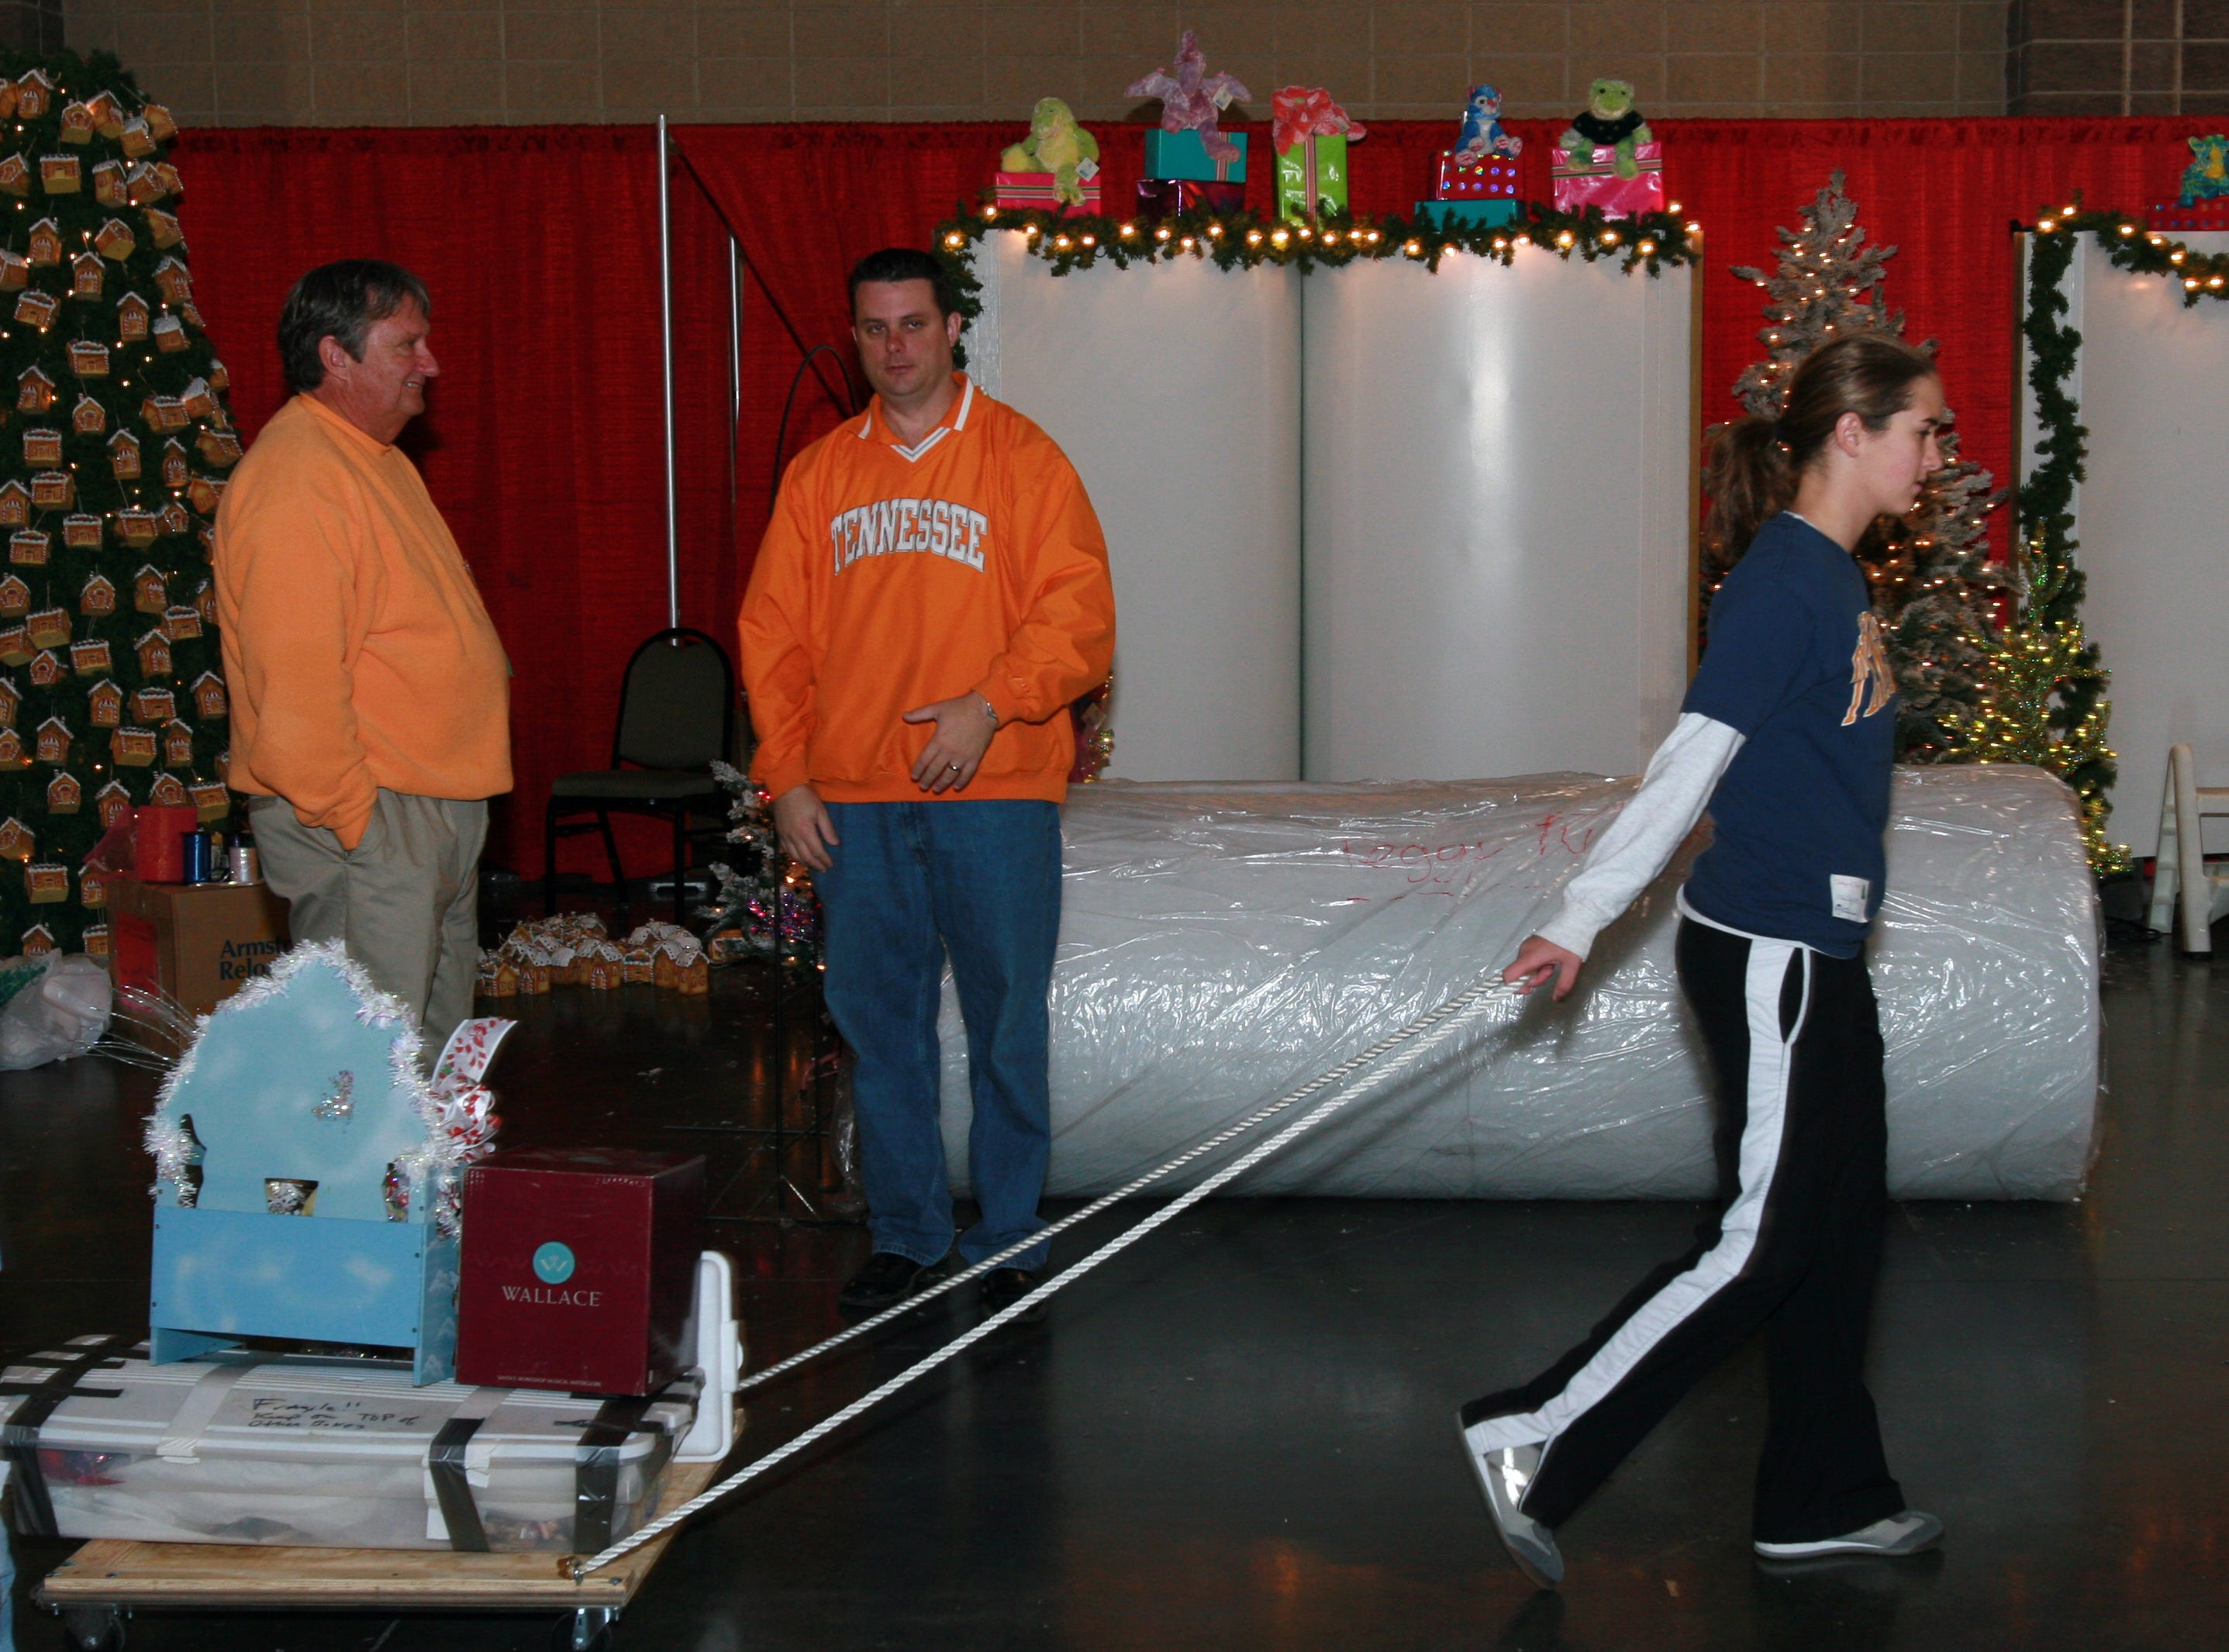 fantasy3.BC#6759--LIVING--Molly Broome(16), a member of the Bearden High Key Club, helps to load in supplies for a vendor at the Knoxville Convention Center on Saturday, November 18.  Broome was among many teenage volunteers who turned out to  volunteer their time to make the Fantasy of Trees a success.  (Bryan Campbell/Special to the News Sentinel)